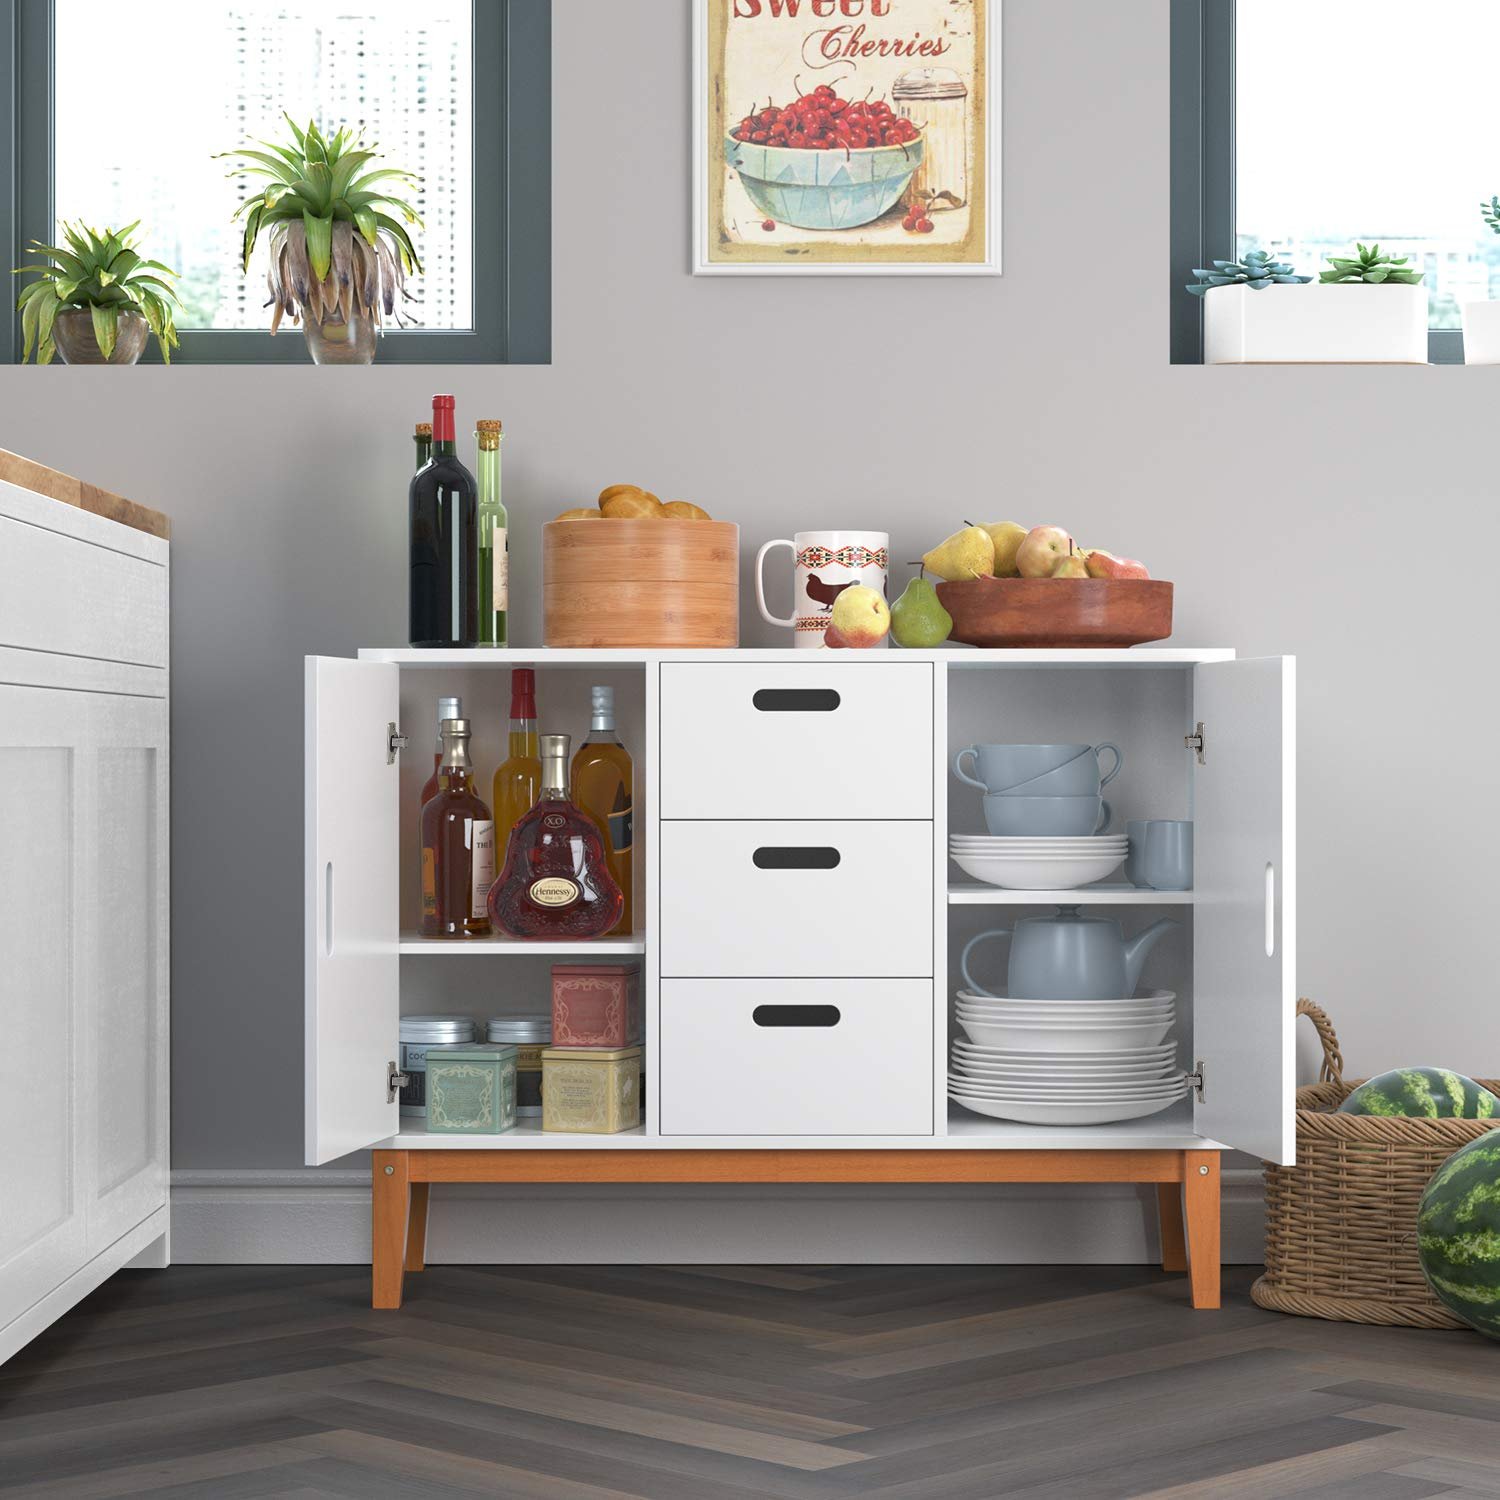 HOMECHO Floor Buffet Sideboard Storage Cabinet Freestanding Console Table Cupboard Chest 2 Door, 3 Drawers and 2 Inside Adjustment Shelf for Hallway, Living Room and Kitchen White Color HMC-MD-004 by HOMECHO (Image #3)